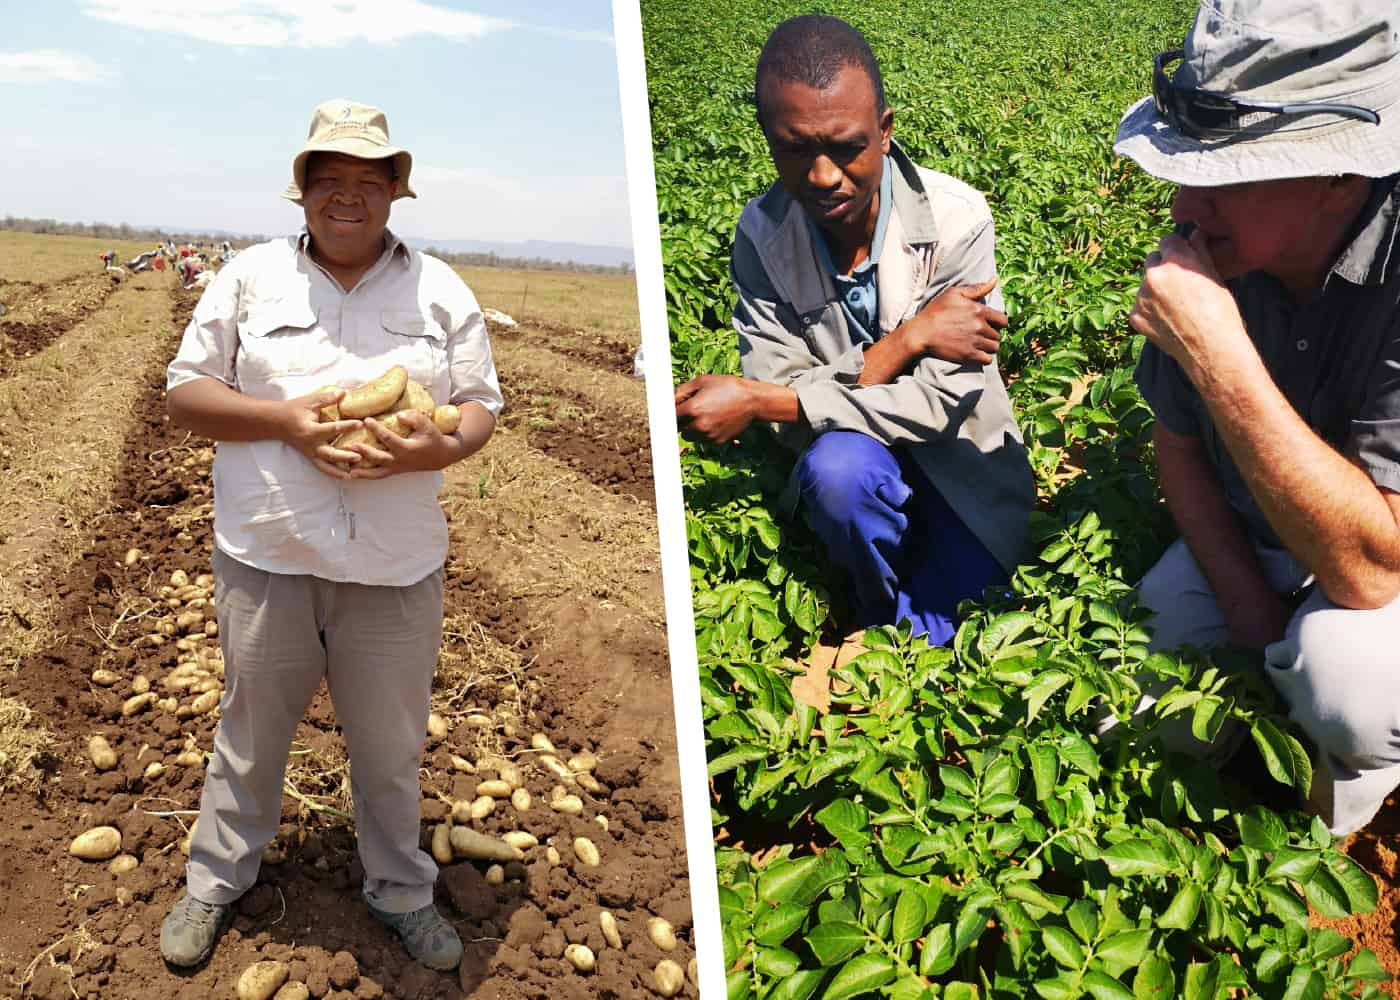 Over the years, Potatoes SA's enterprise development program has helped several emerging potato farmers in building a commercial farming business.